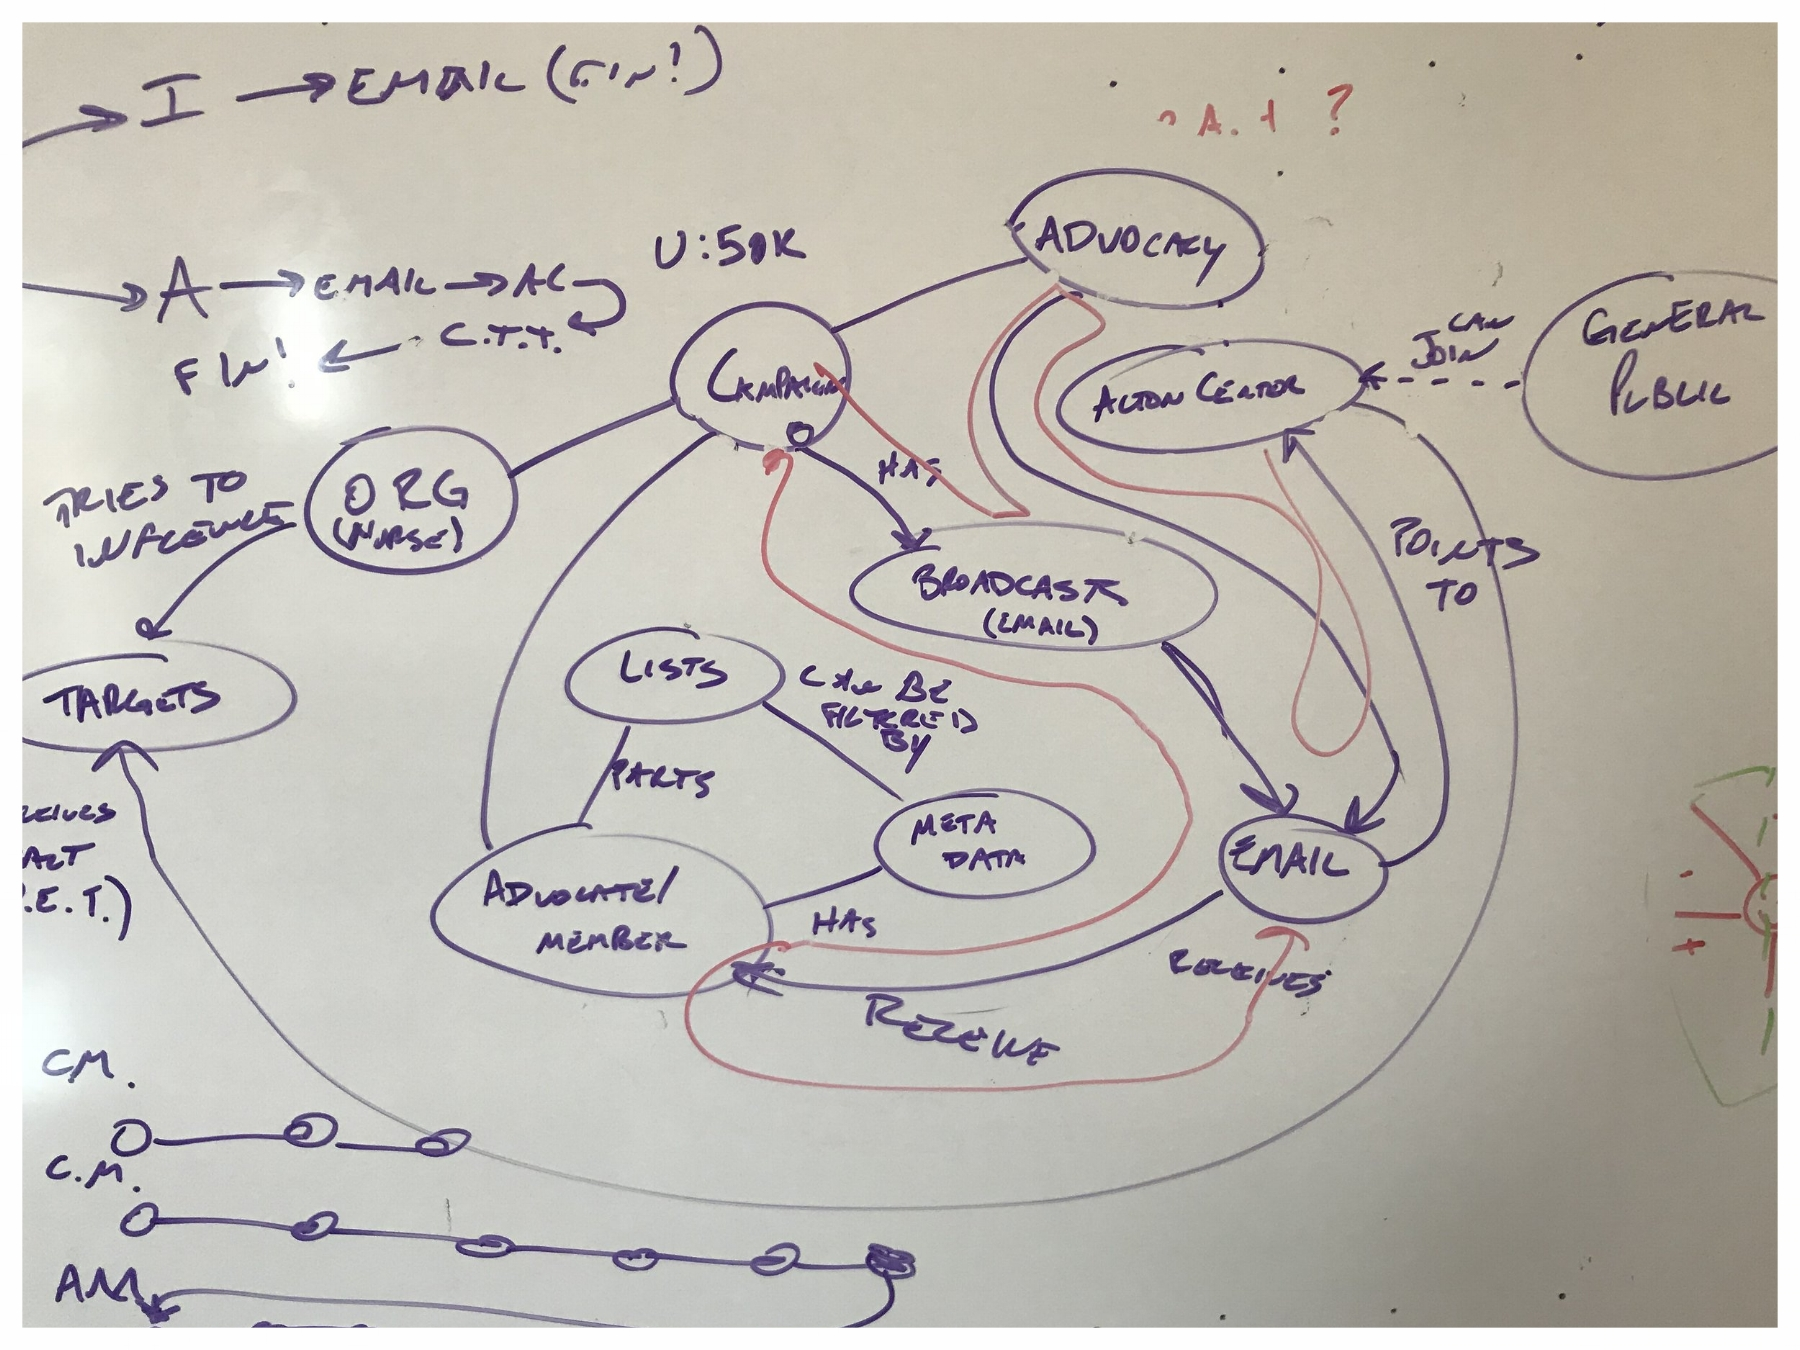 - These meetings and discussions led to a concept map. This was a great place to start and it helped to wrap our heads around the current and possible future of this company's tool.